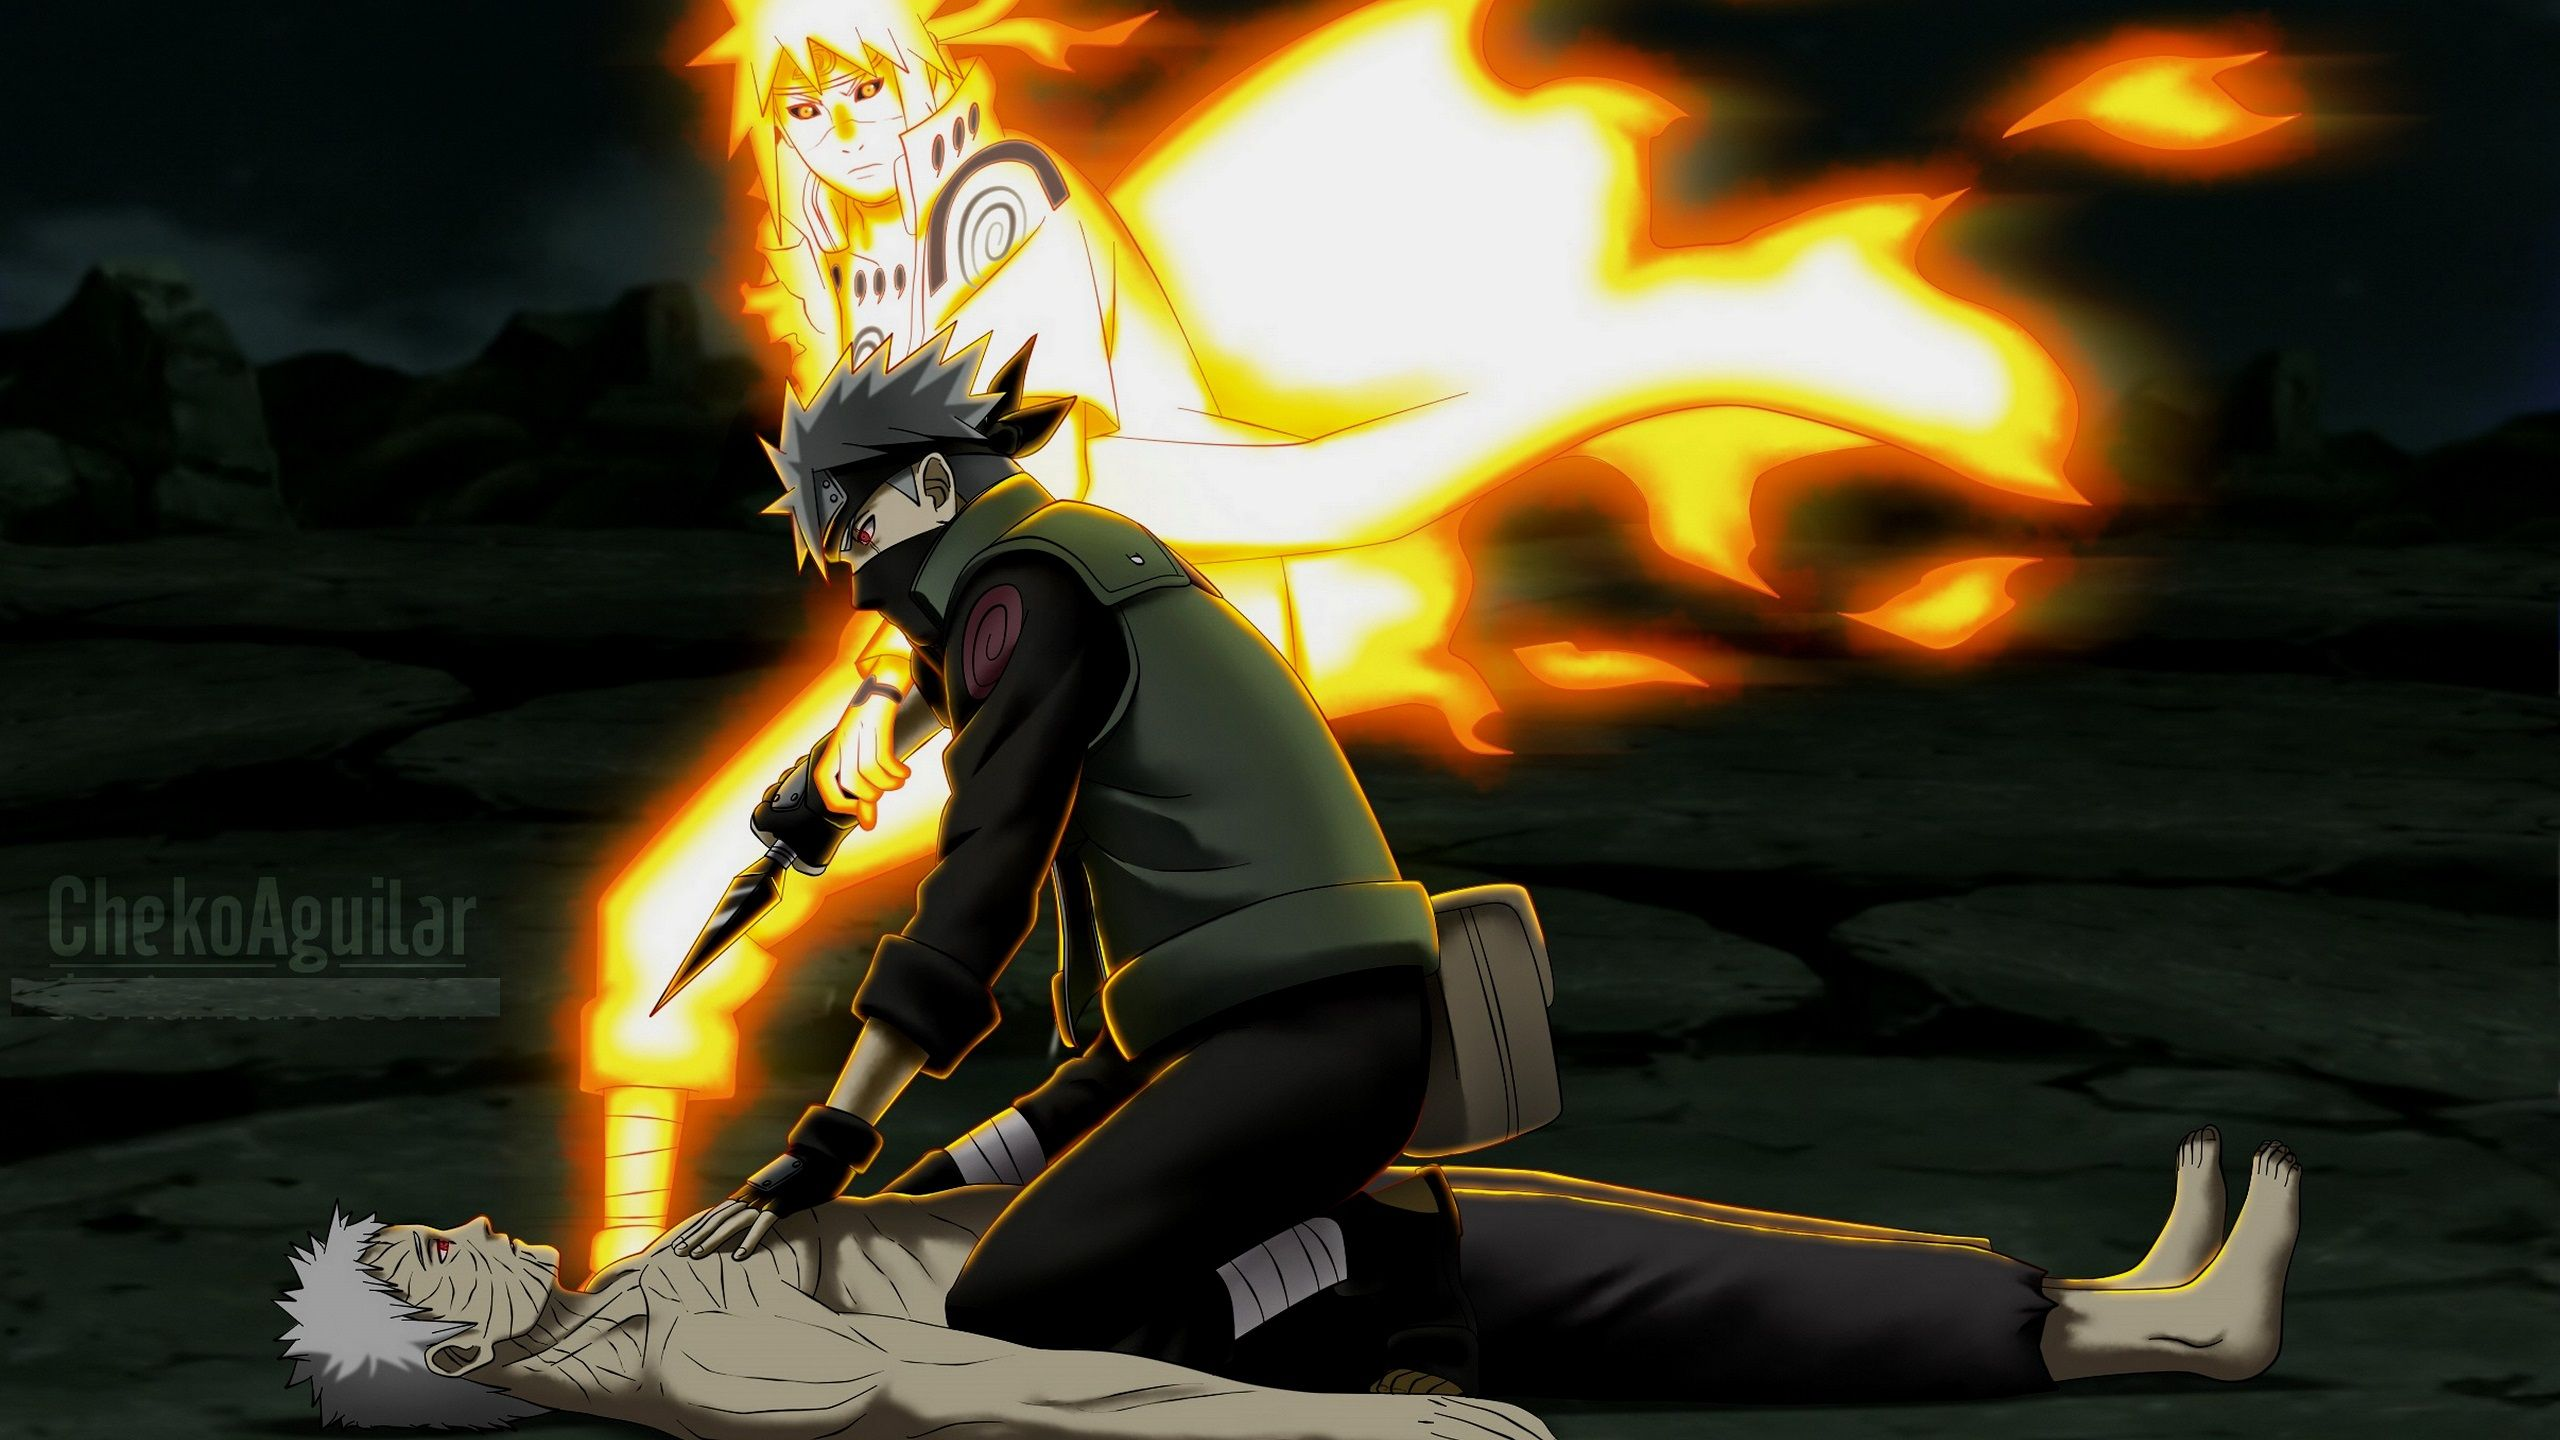 View, Download, Rate, and Comment on this Naruto Image in